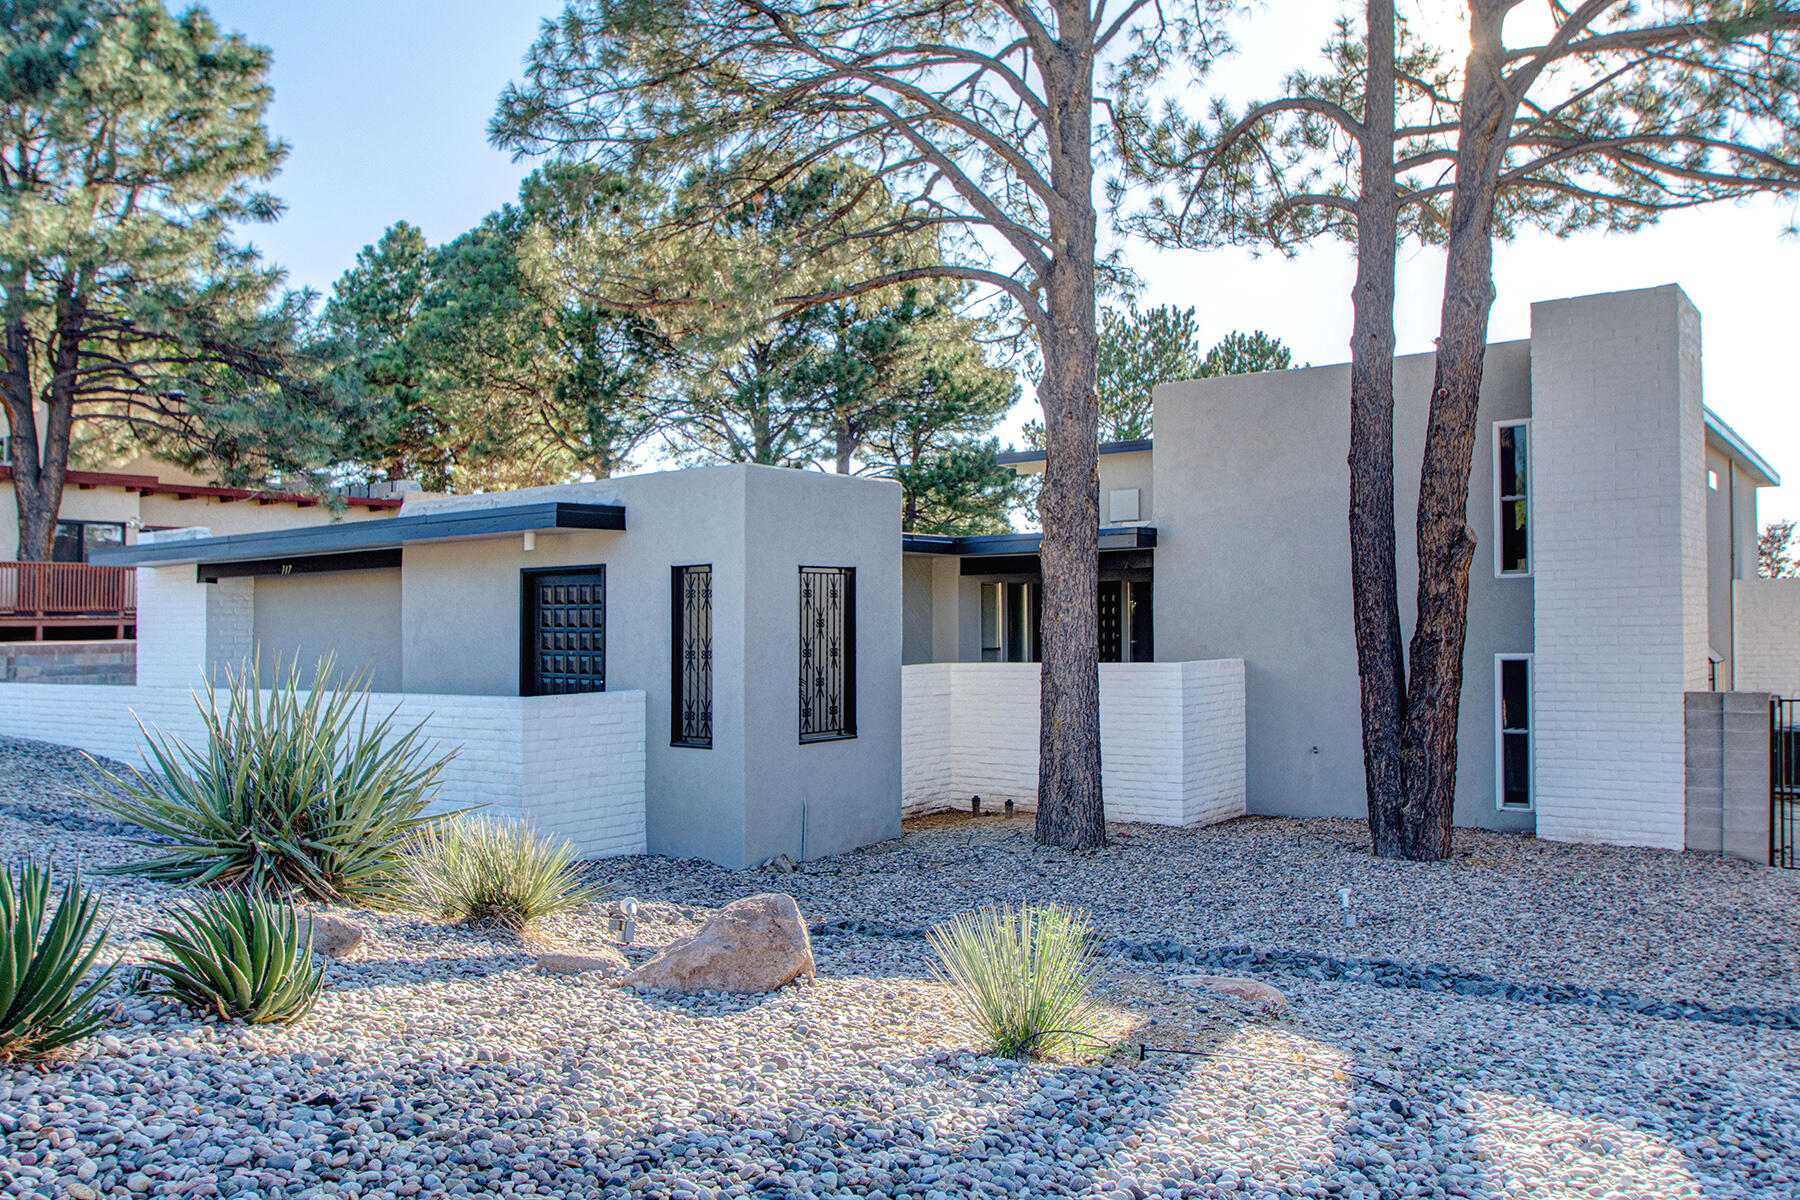 Incredible tri-level with 4BDR/2BA/2CG and lots of living space. Located in Albuquerque's Four Hills Golf Course Community. Enter through the courtyard and enjoy many updates throughout too numerous to list. Remodel is still in progress to be completed on 10/1/21. TWO living spaces - lots of natural light throughout. Updated kitchen with 6 burner gas stove & double oven, fresh paint throughout, fresh carpeting in bedrooms and stairs, flagstone flooring on first floor. Hidden wet bar, two wood burning fireplaces, two master suites, REFRIGERATED AIR, duct work replaced in 2017, laundry room near bedrooms, inground heated gunite pool, freshly landscape with rocks, large turf yard and mature trees for shade. Very minimal yard maintenance. This one is not going to last!!